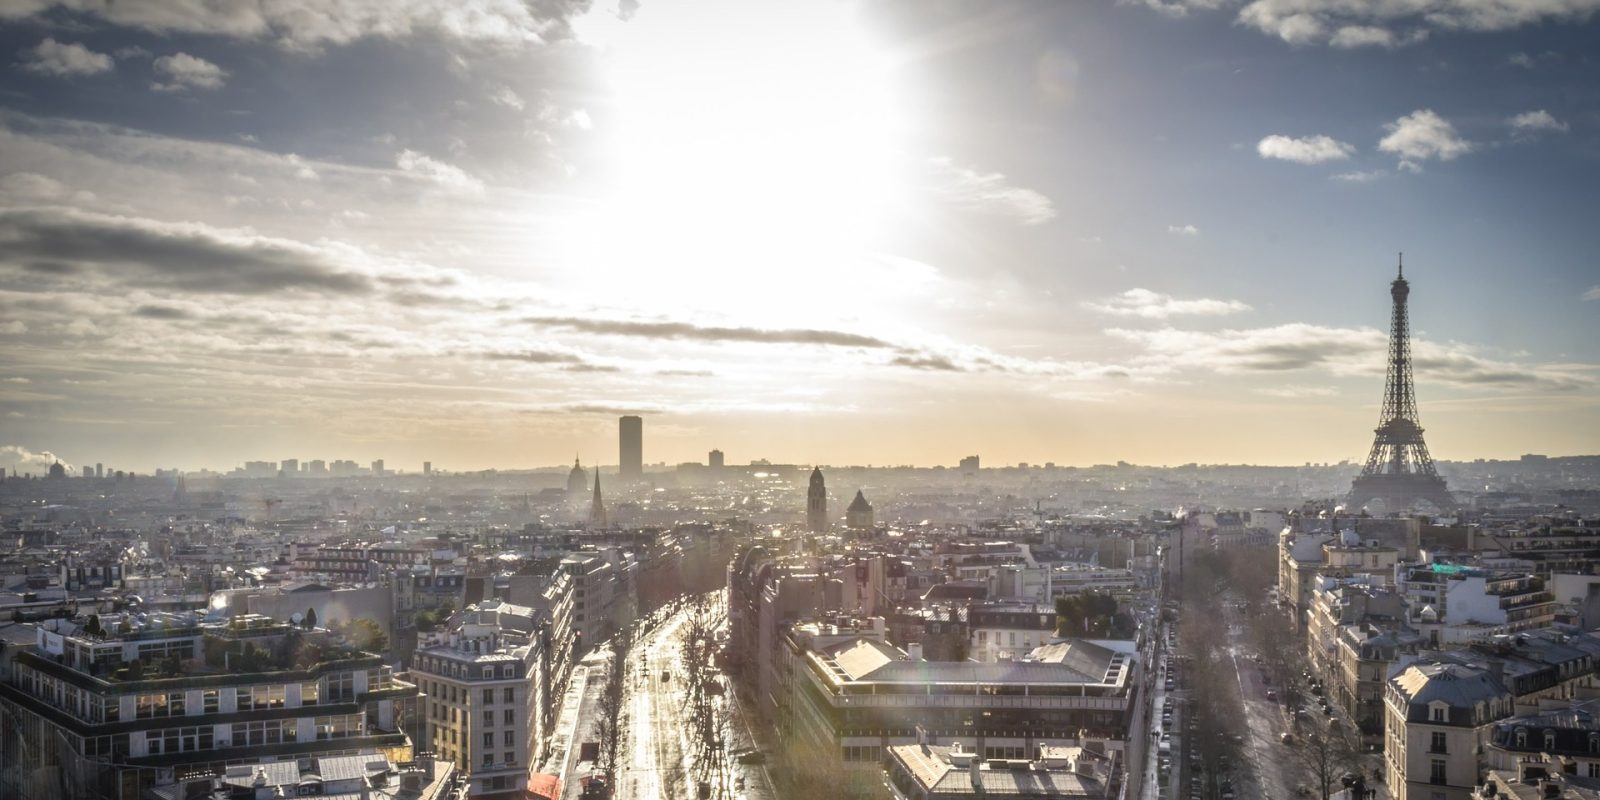 Paris fights smog with biggest ever EU electric bus purchase, 800 e-buses to replace diesel